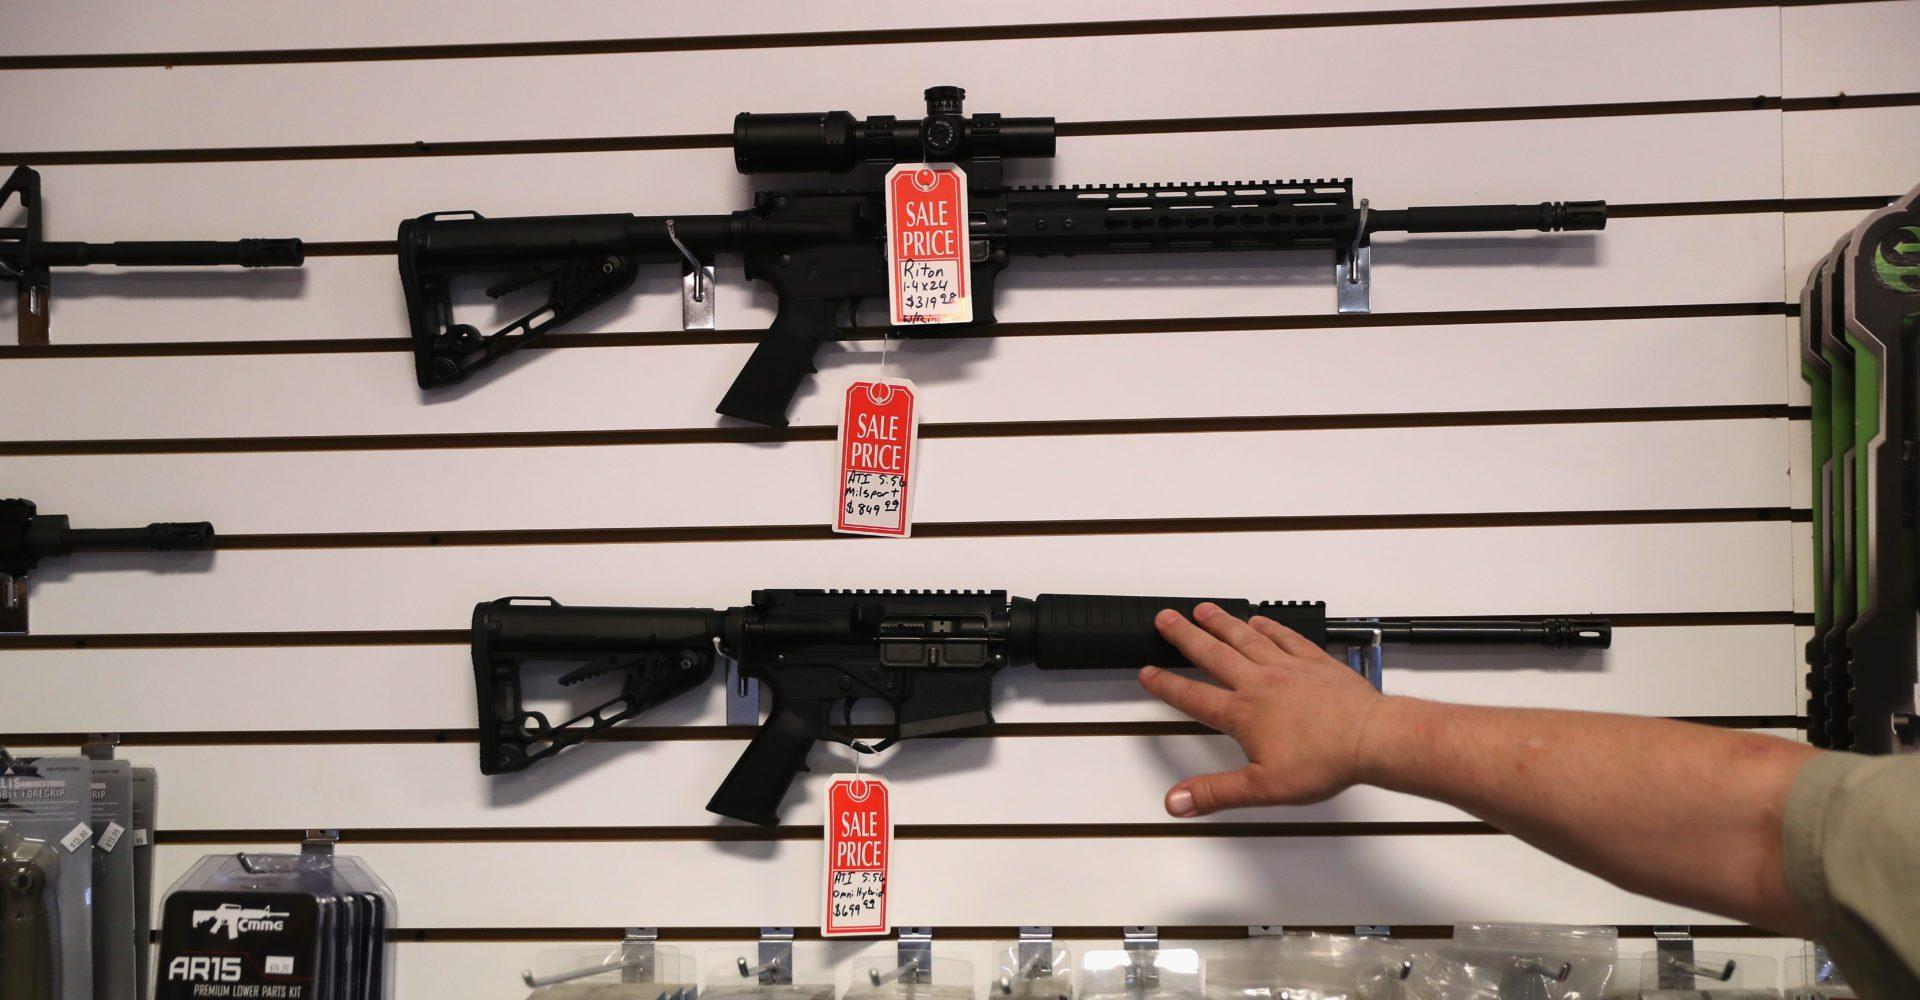 Daily Bulletin: Red Flag Laws Disarmed 1,700+ High-Risk Gun Owners Last Year